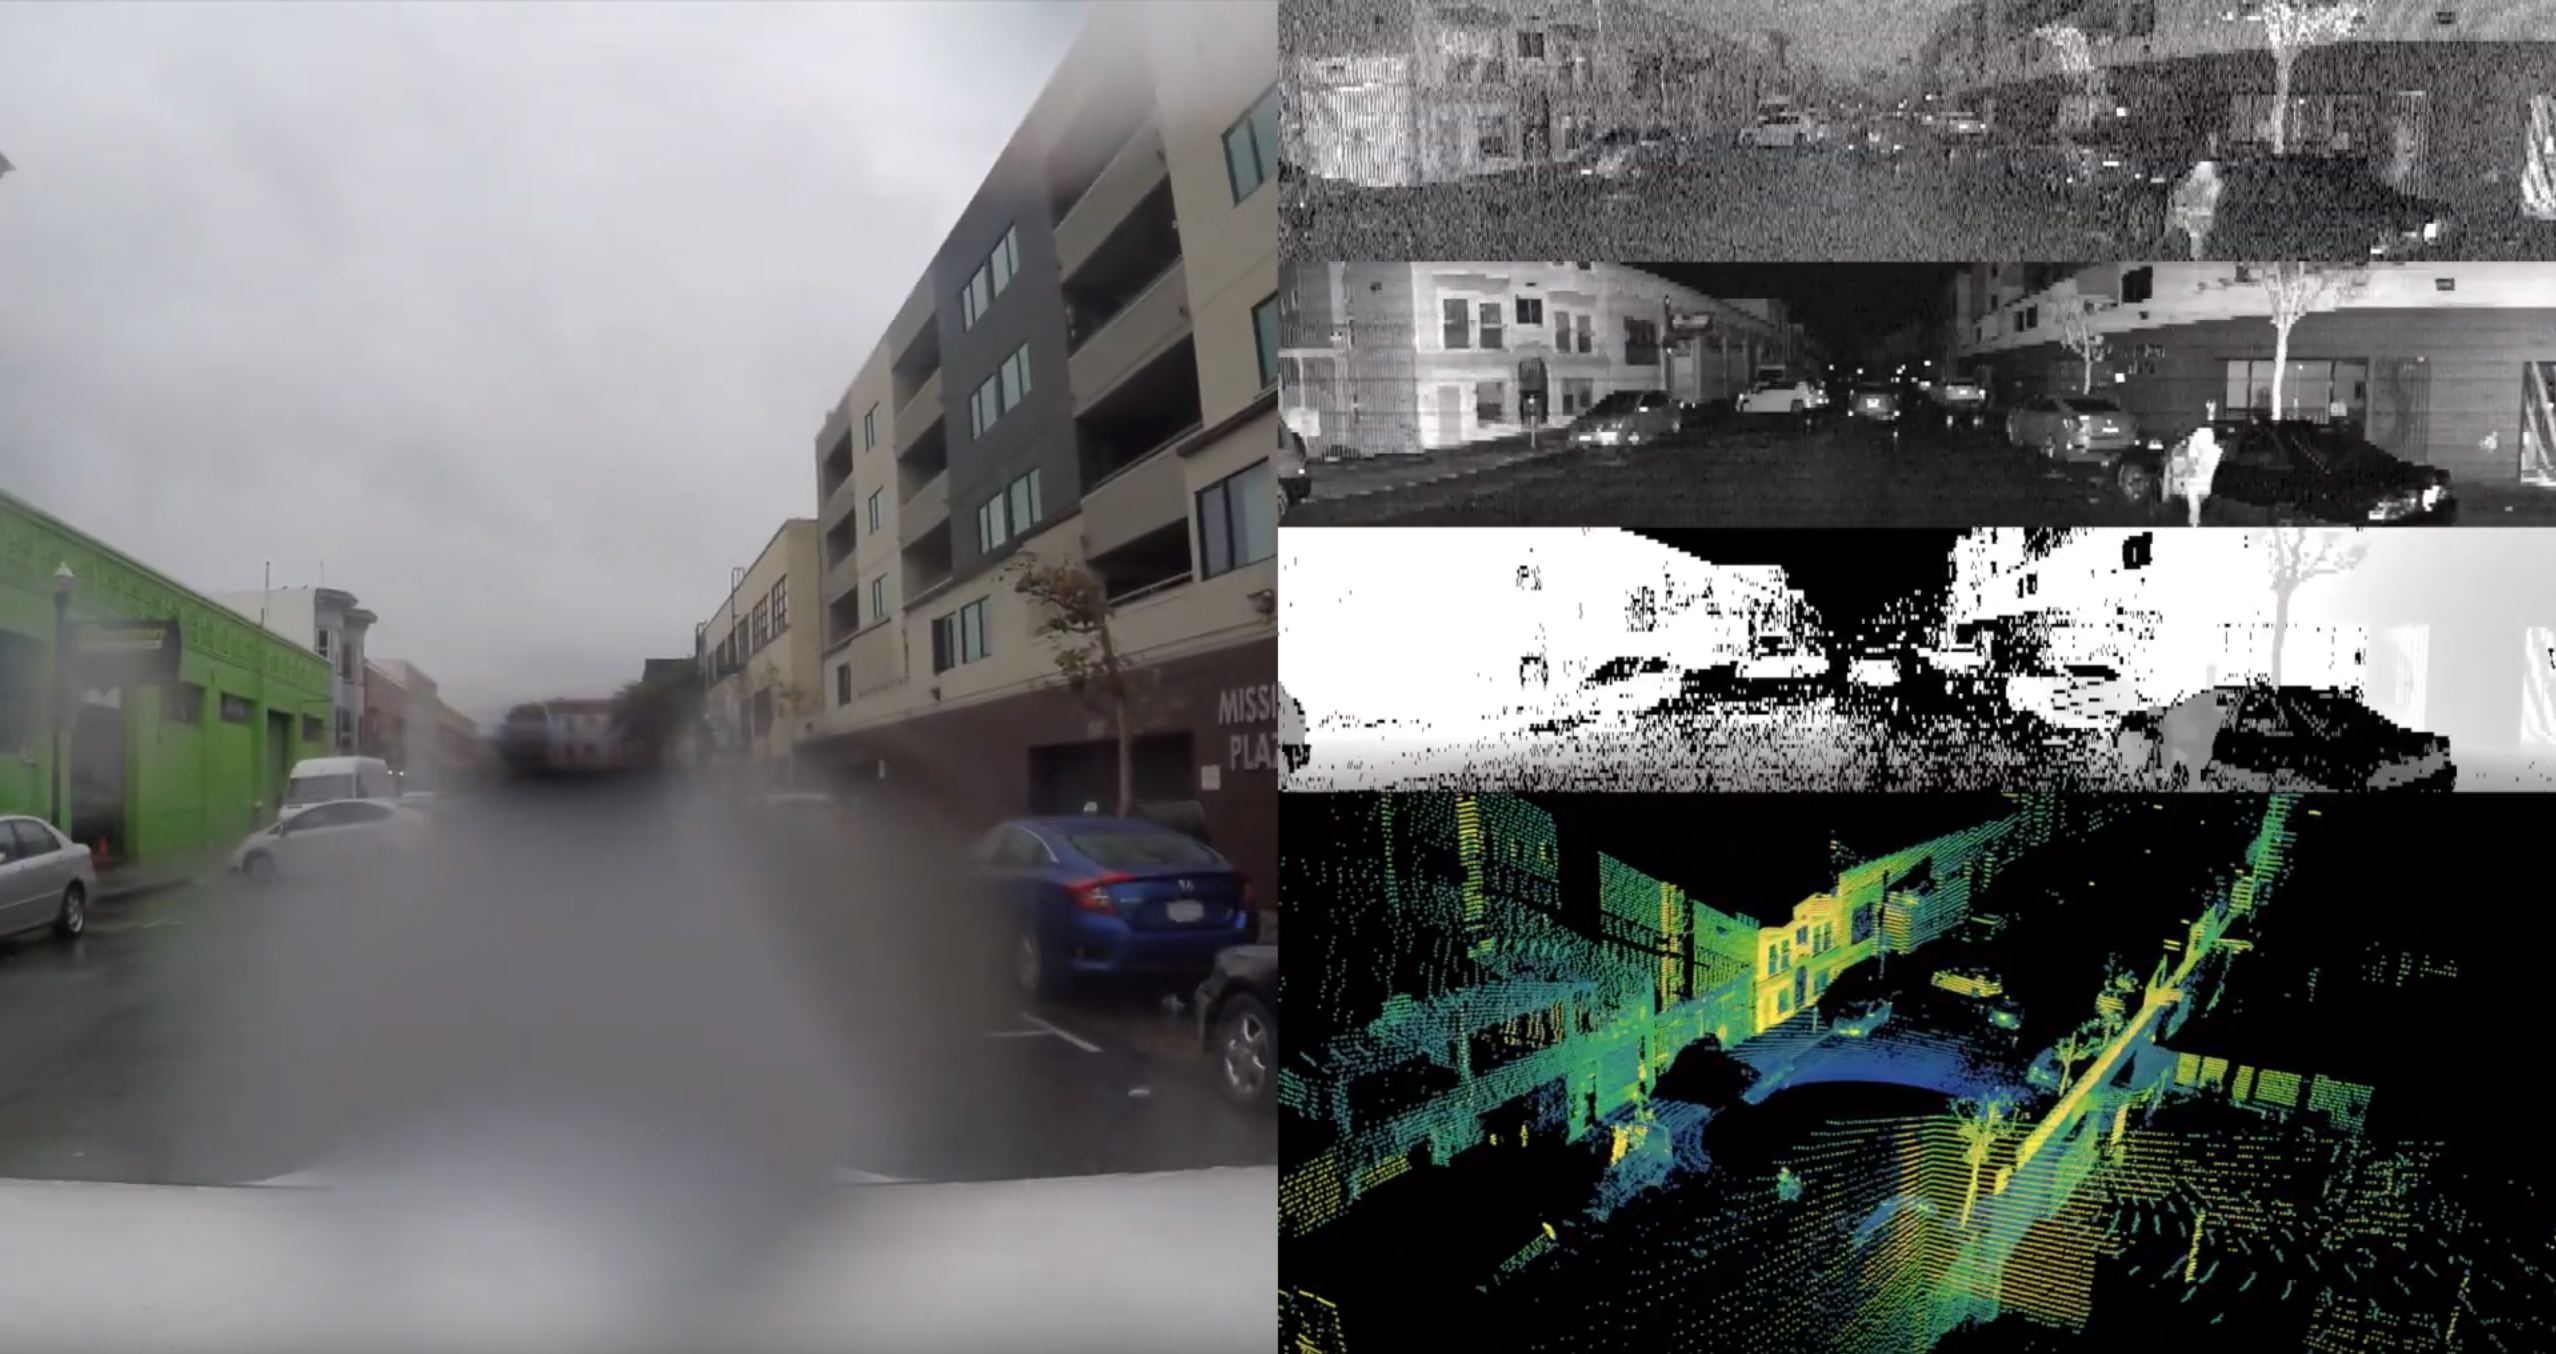 Point cloud gif comparing dry roadway conditions to wet roadway conditions